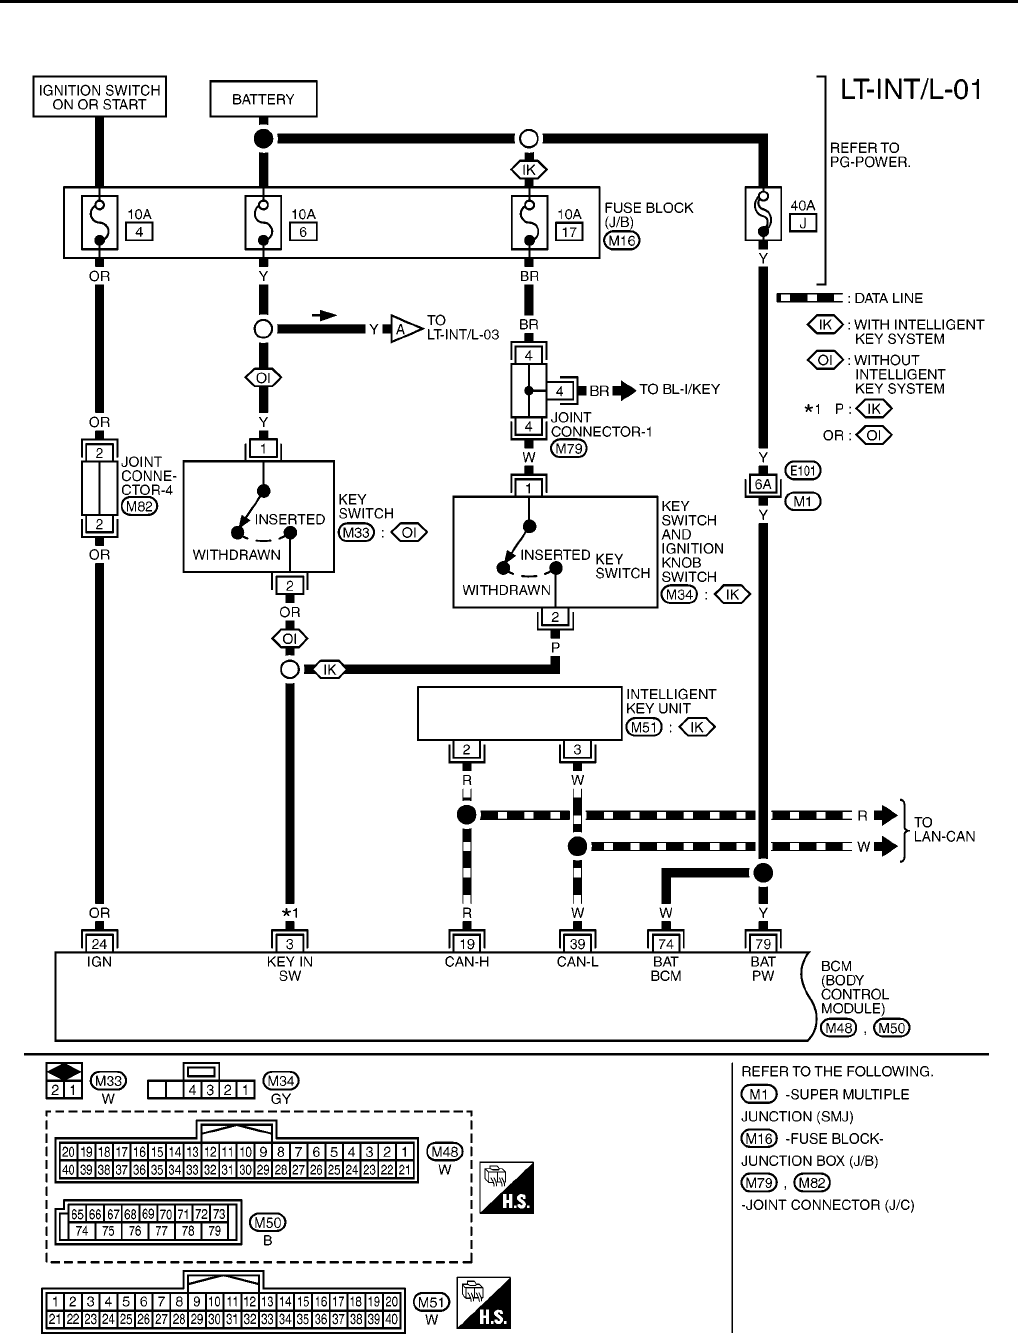 Nissan Caravan Wiring Diagram Pdf Schematic Diagrams Micra K11 Elgrand E50 X 88 Mazda Alternator